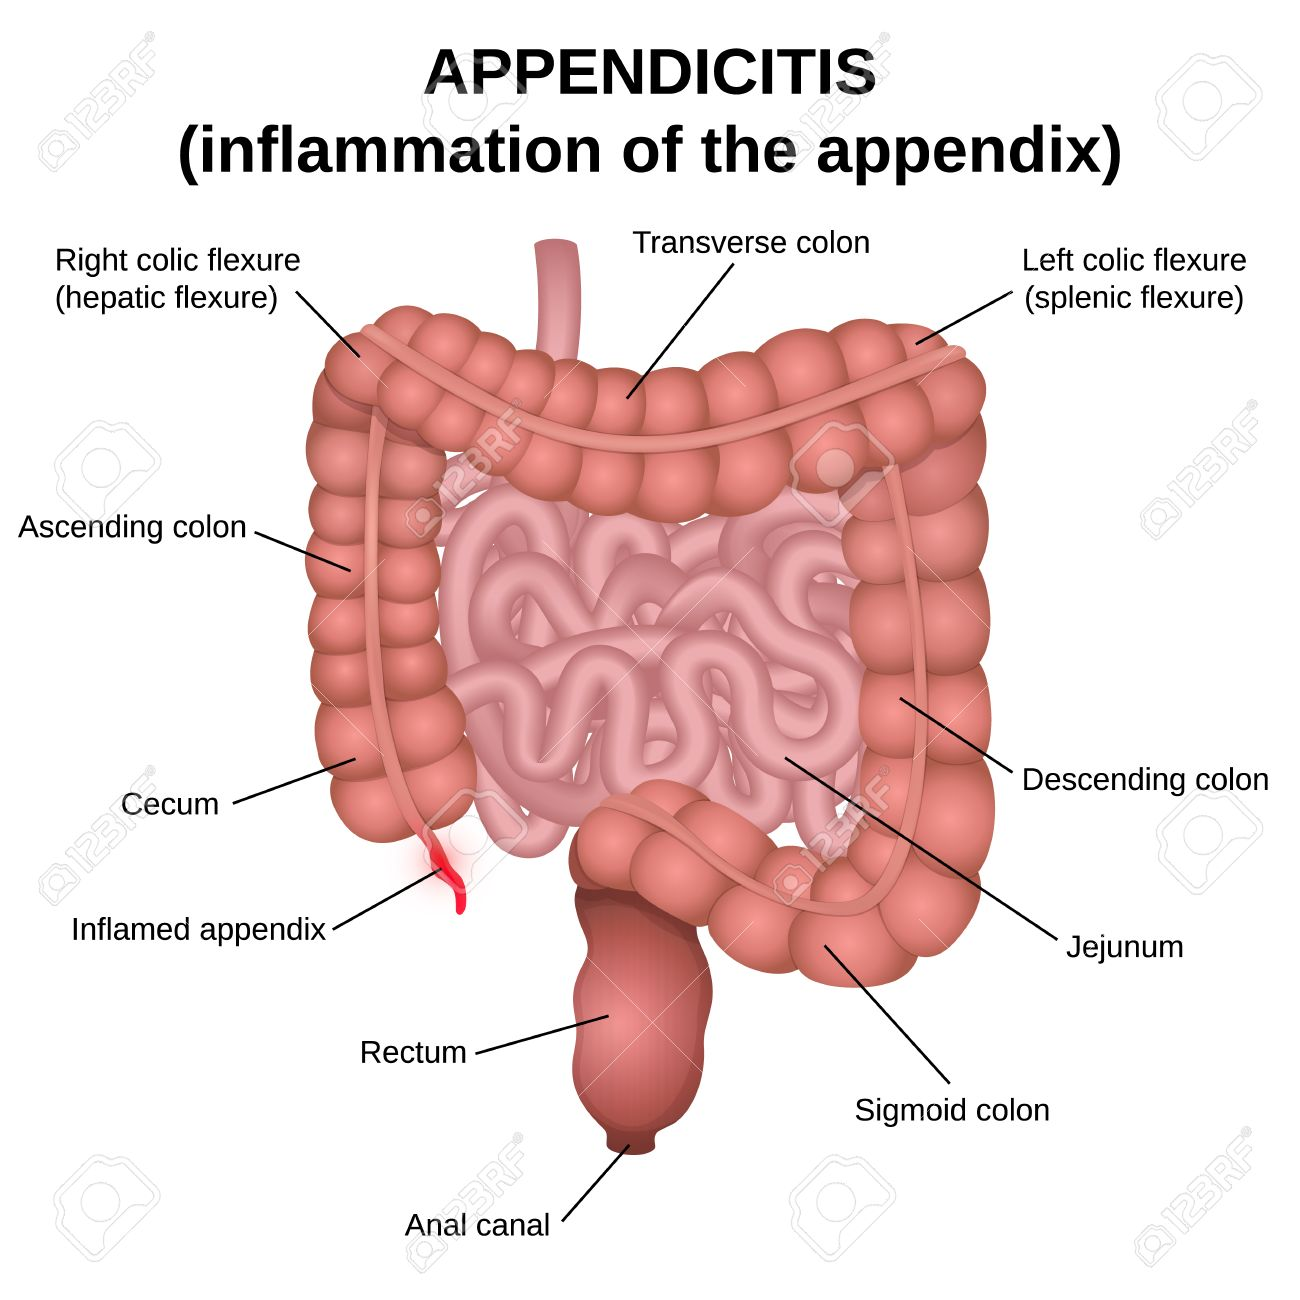 Appendicitis An Inflammation Of The Appendix Colon And Small